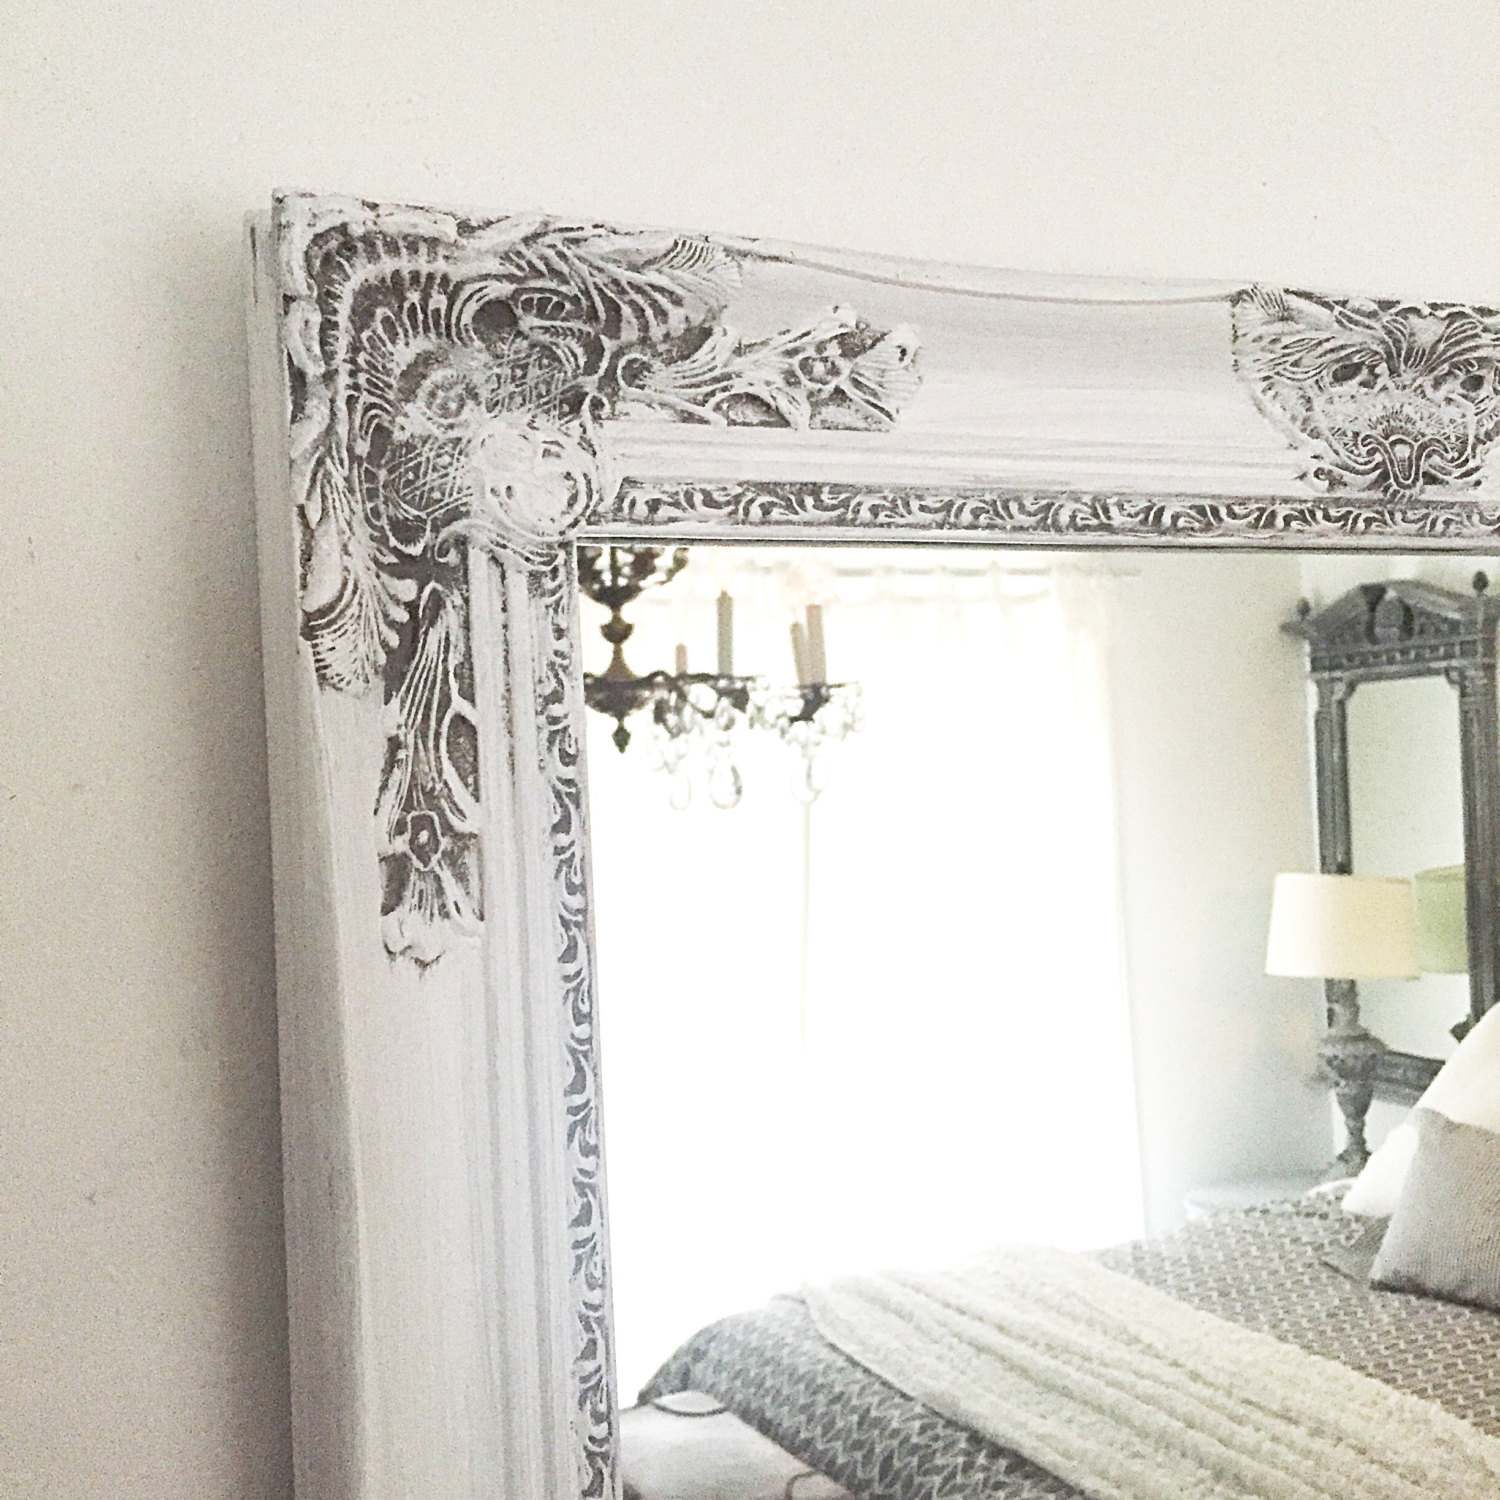 Bedroom Mirror Stand Diy Wrought Iron Floor Easel Diy Standing Pertaining To Wrought Iron Floor Mirror (View 8 of 15)